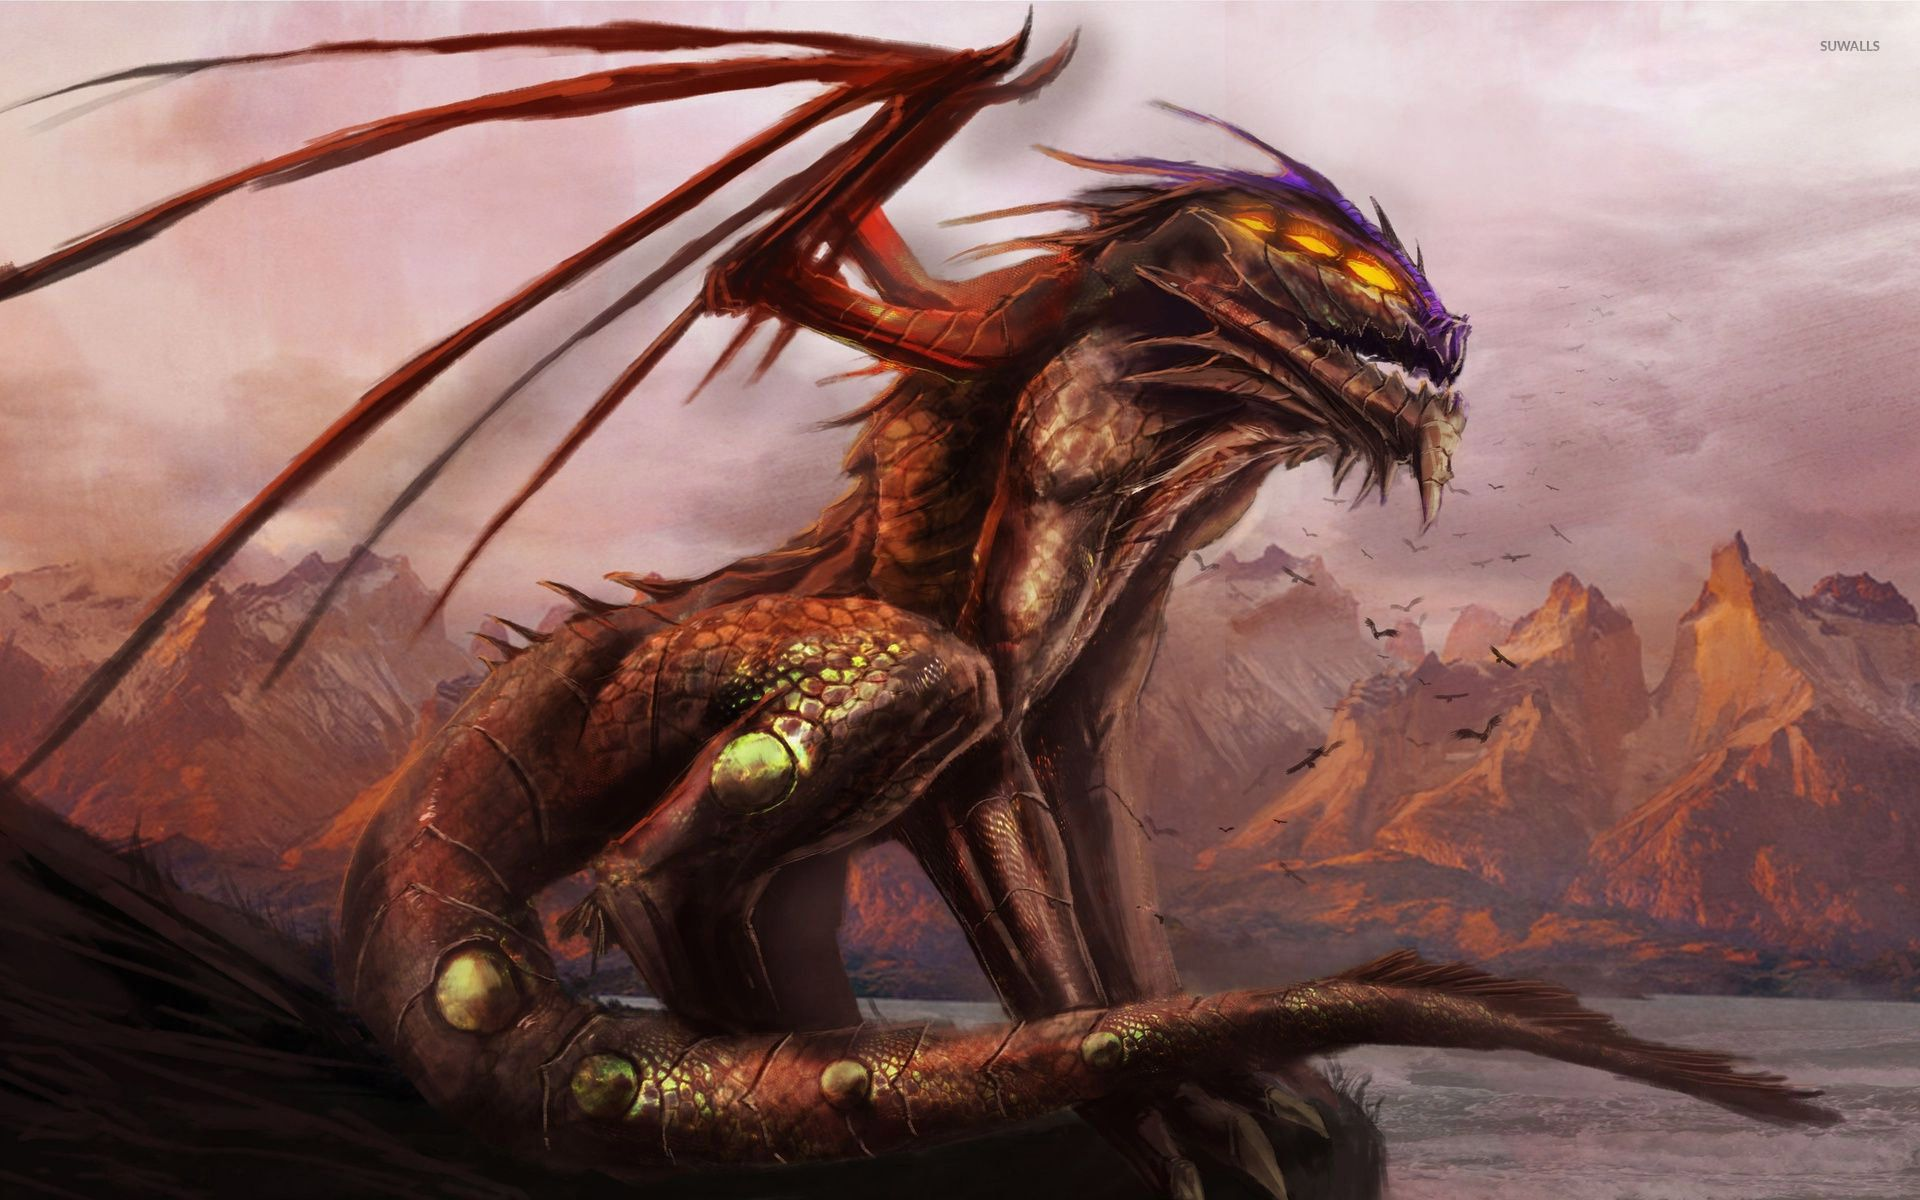 Scary dragon on the cliff wallpaper Dragons Pinterest